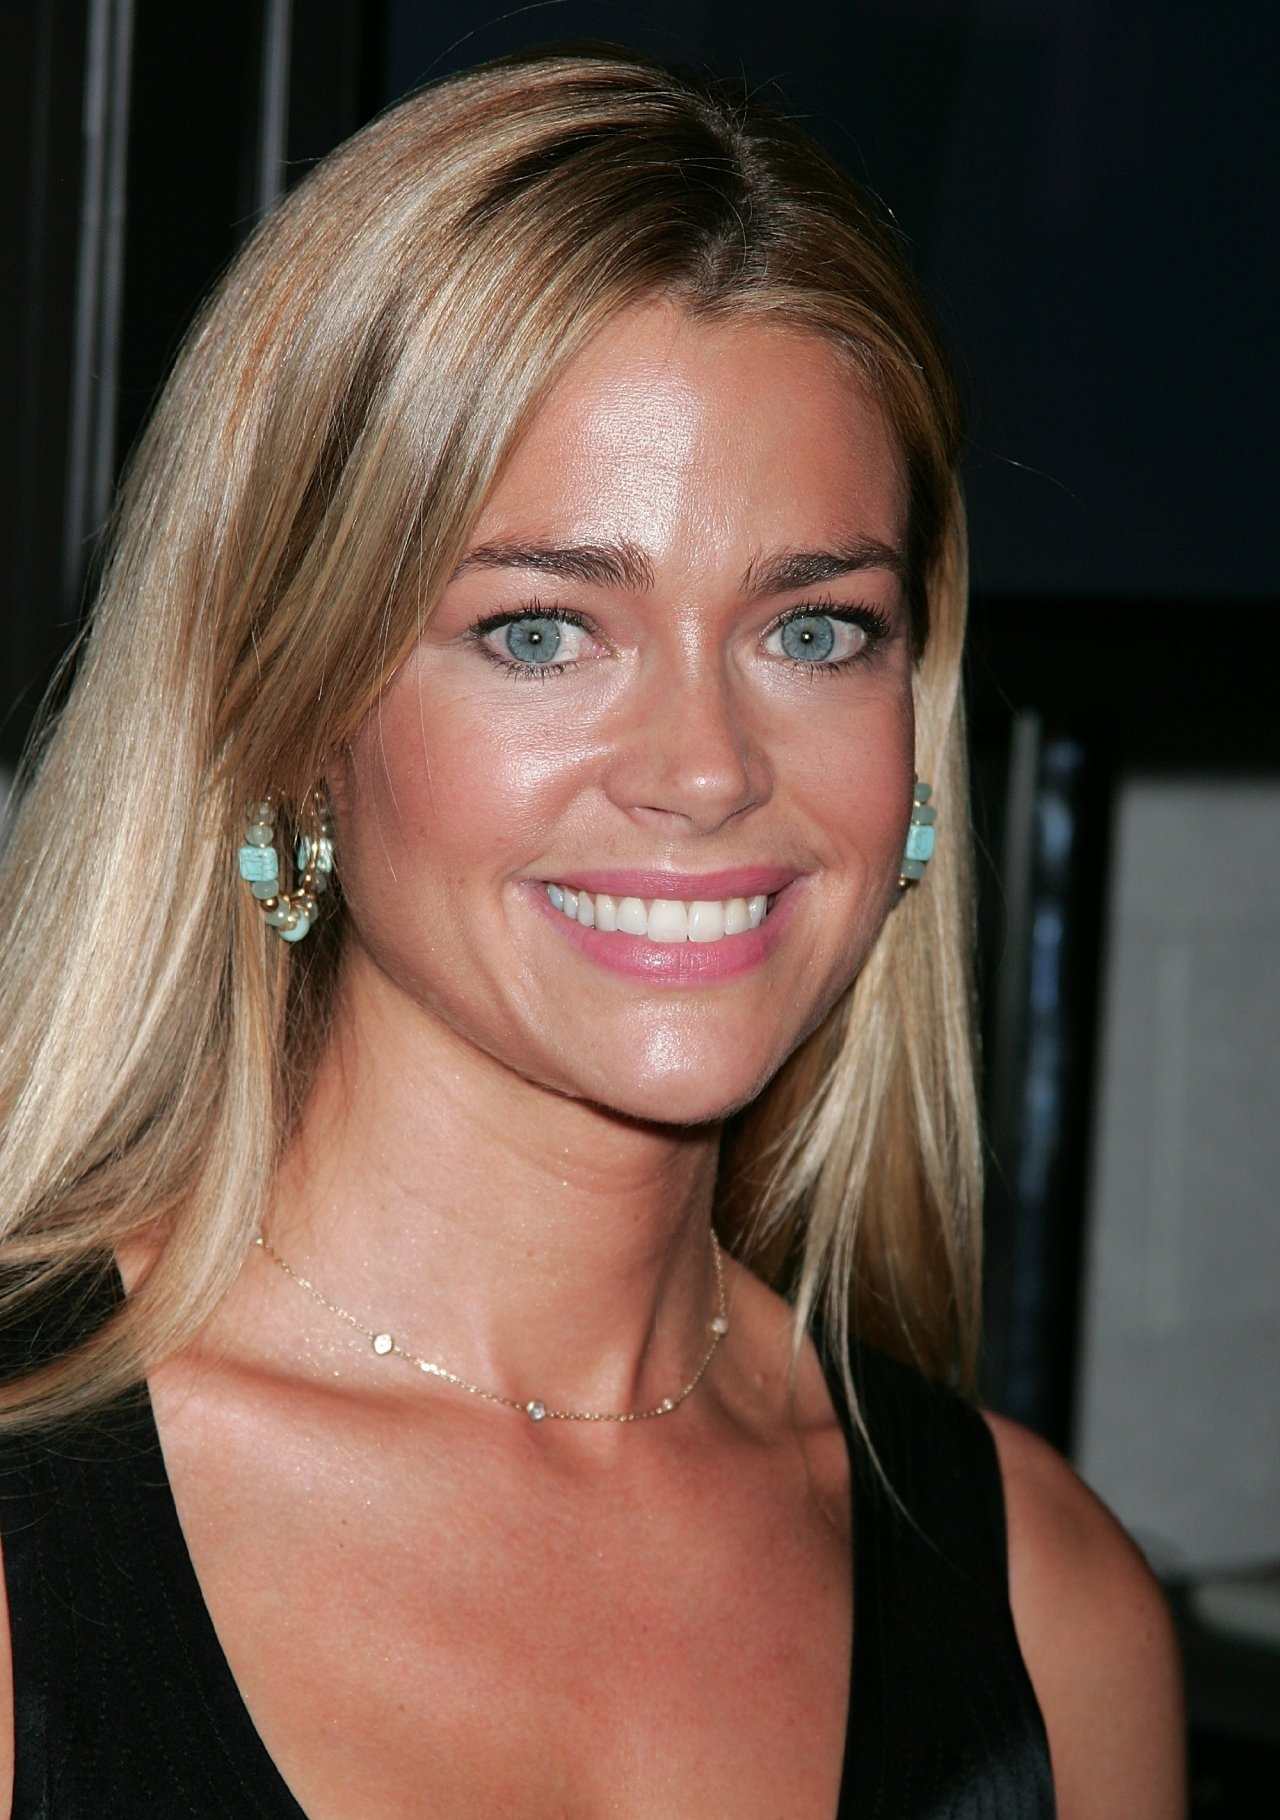 Denise Richards leaked wallpapers